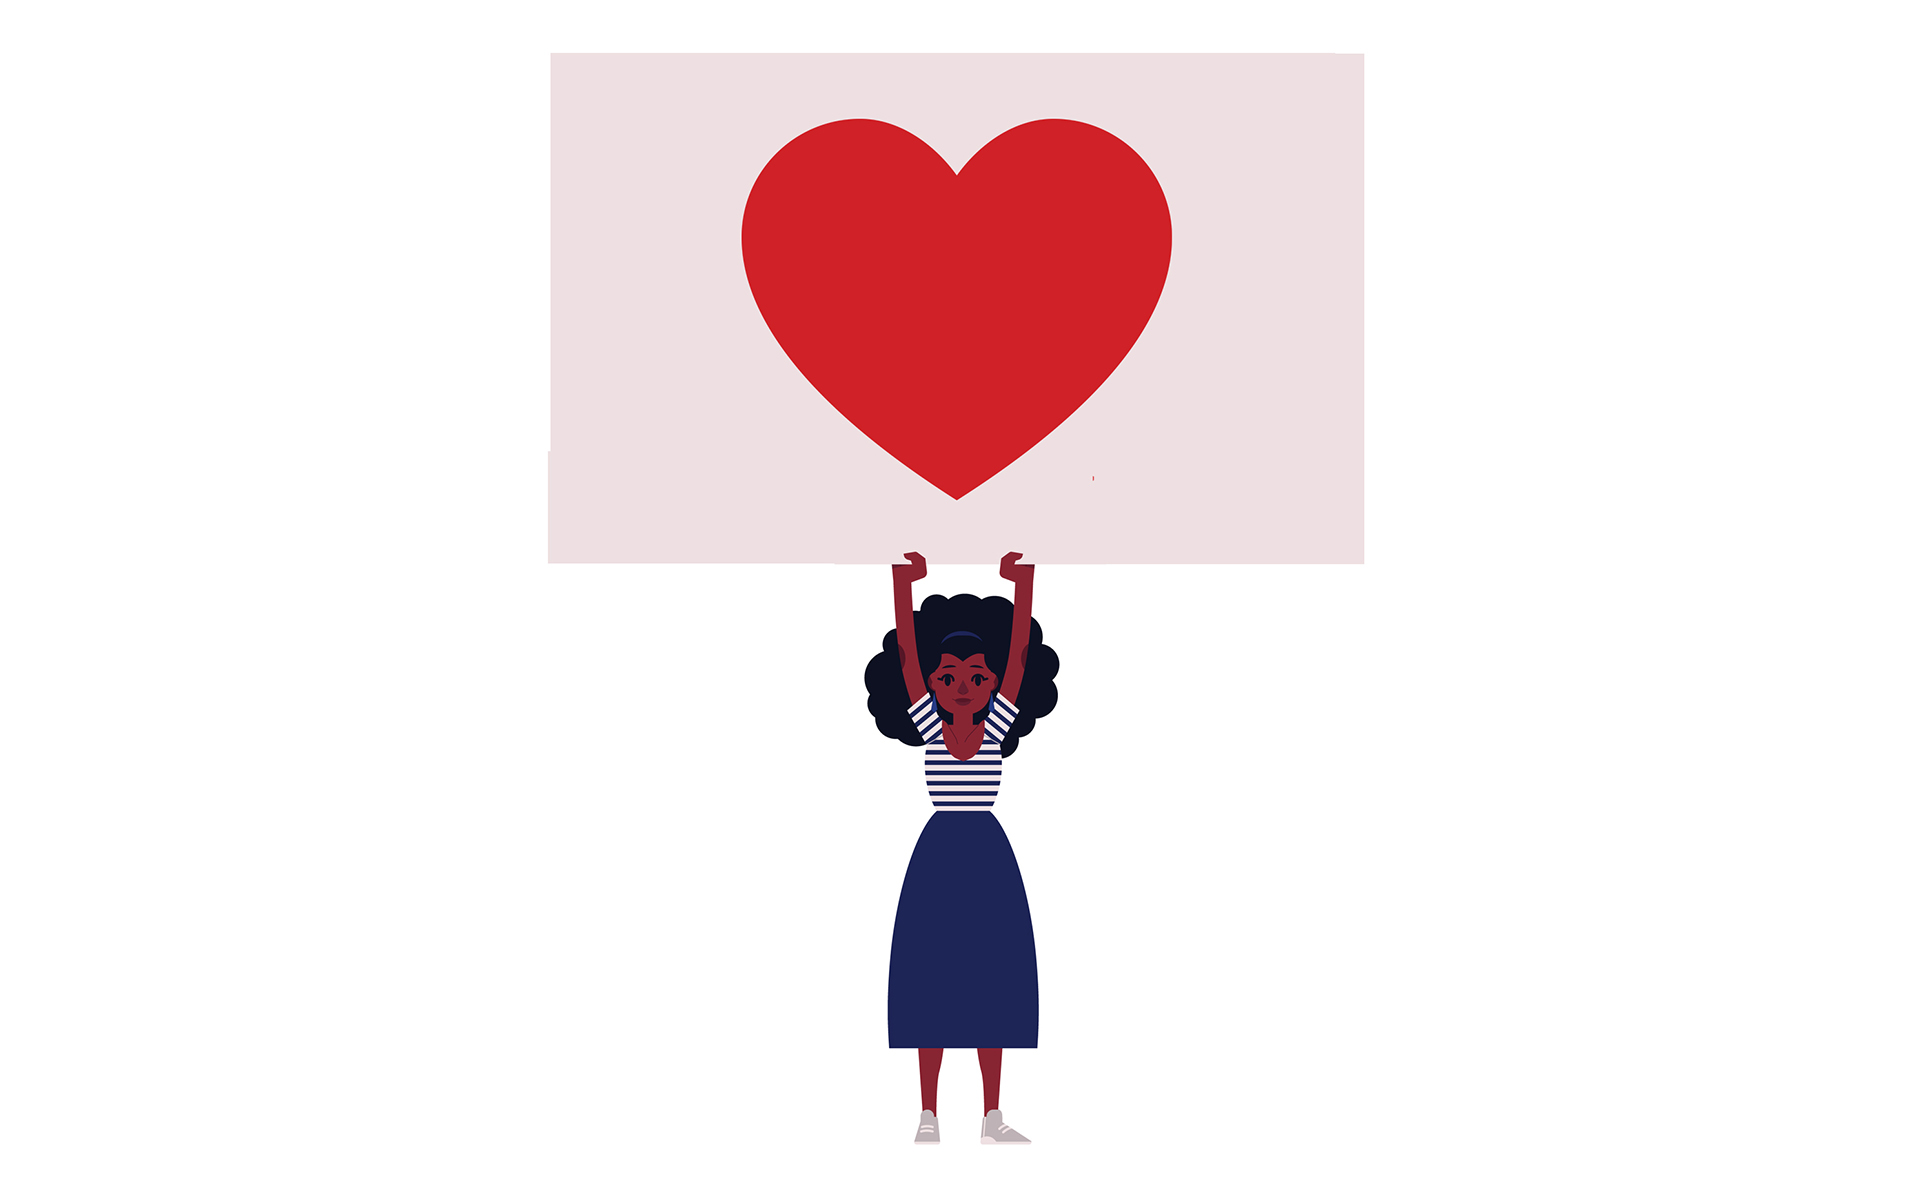 woman with heart image